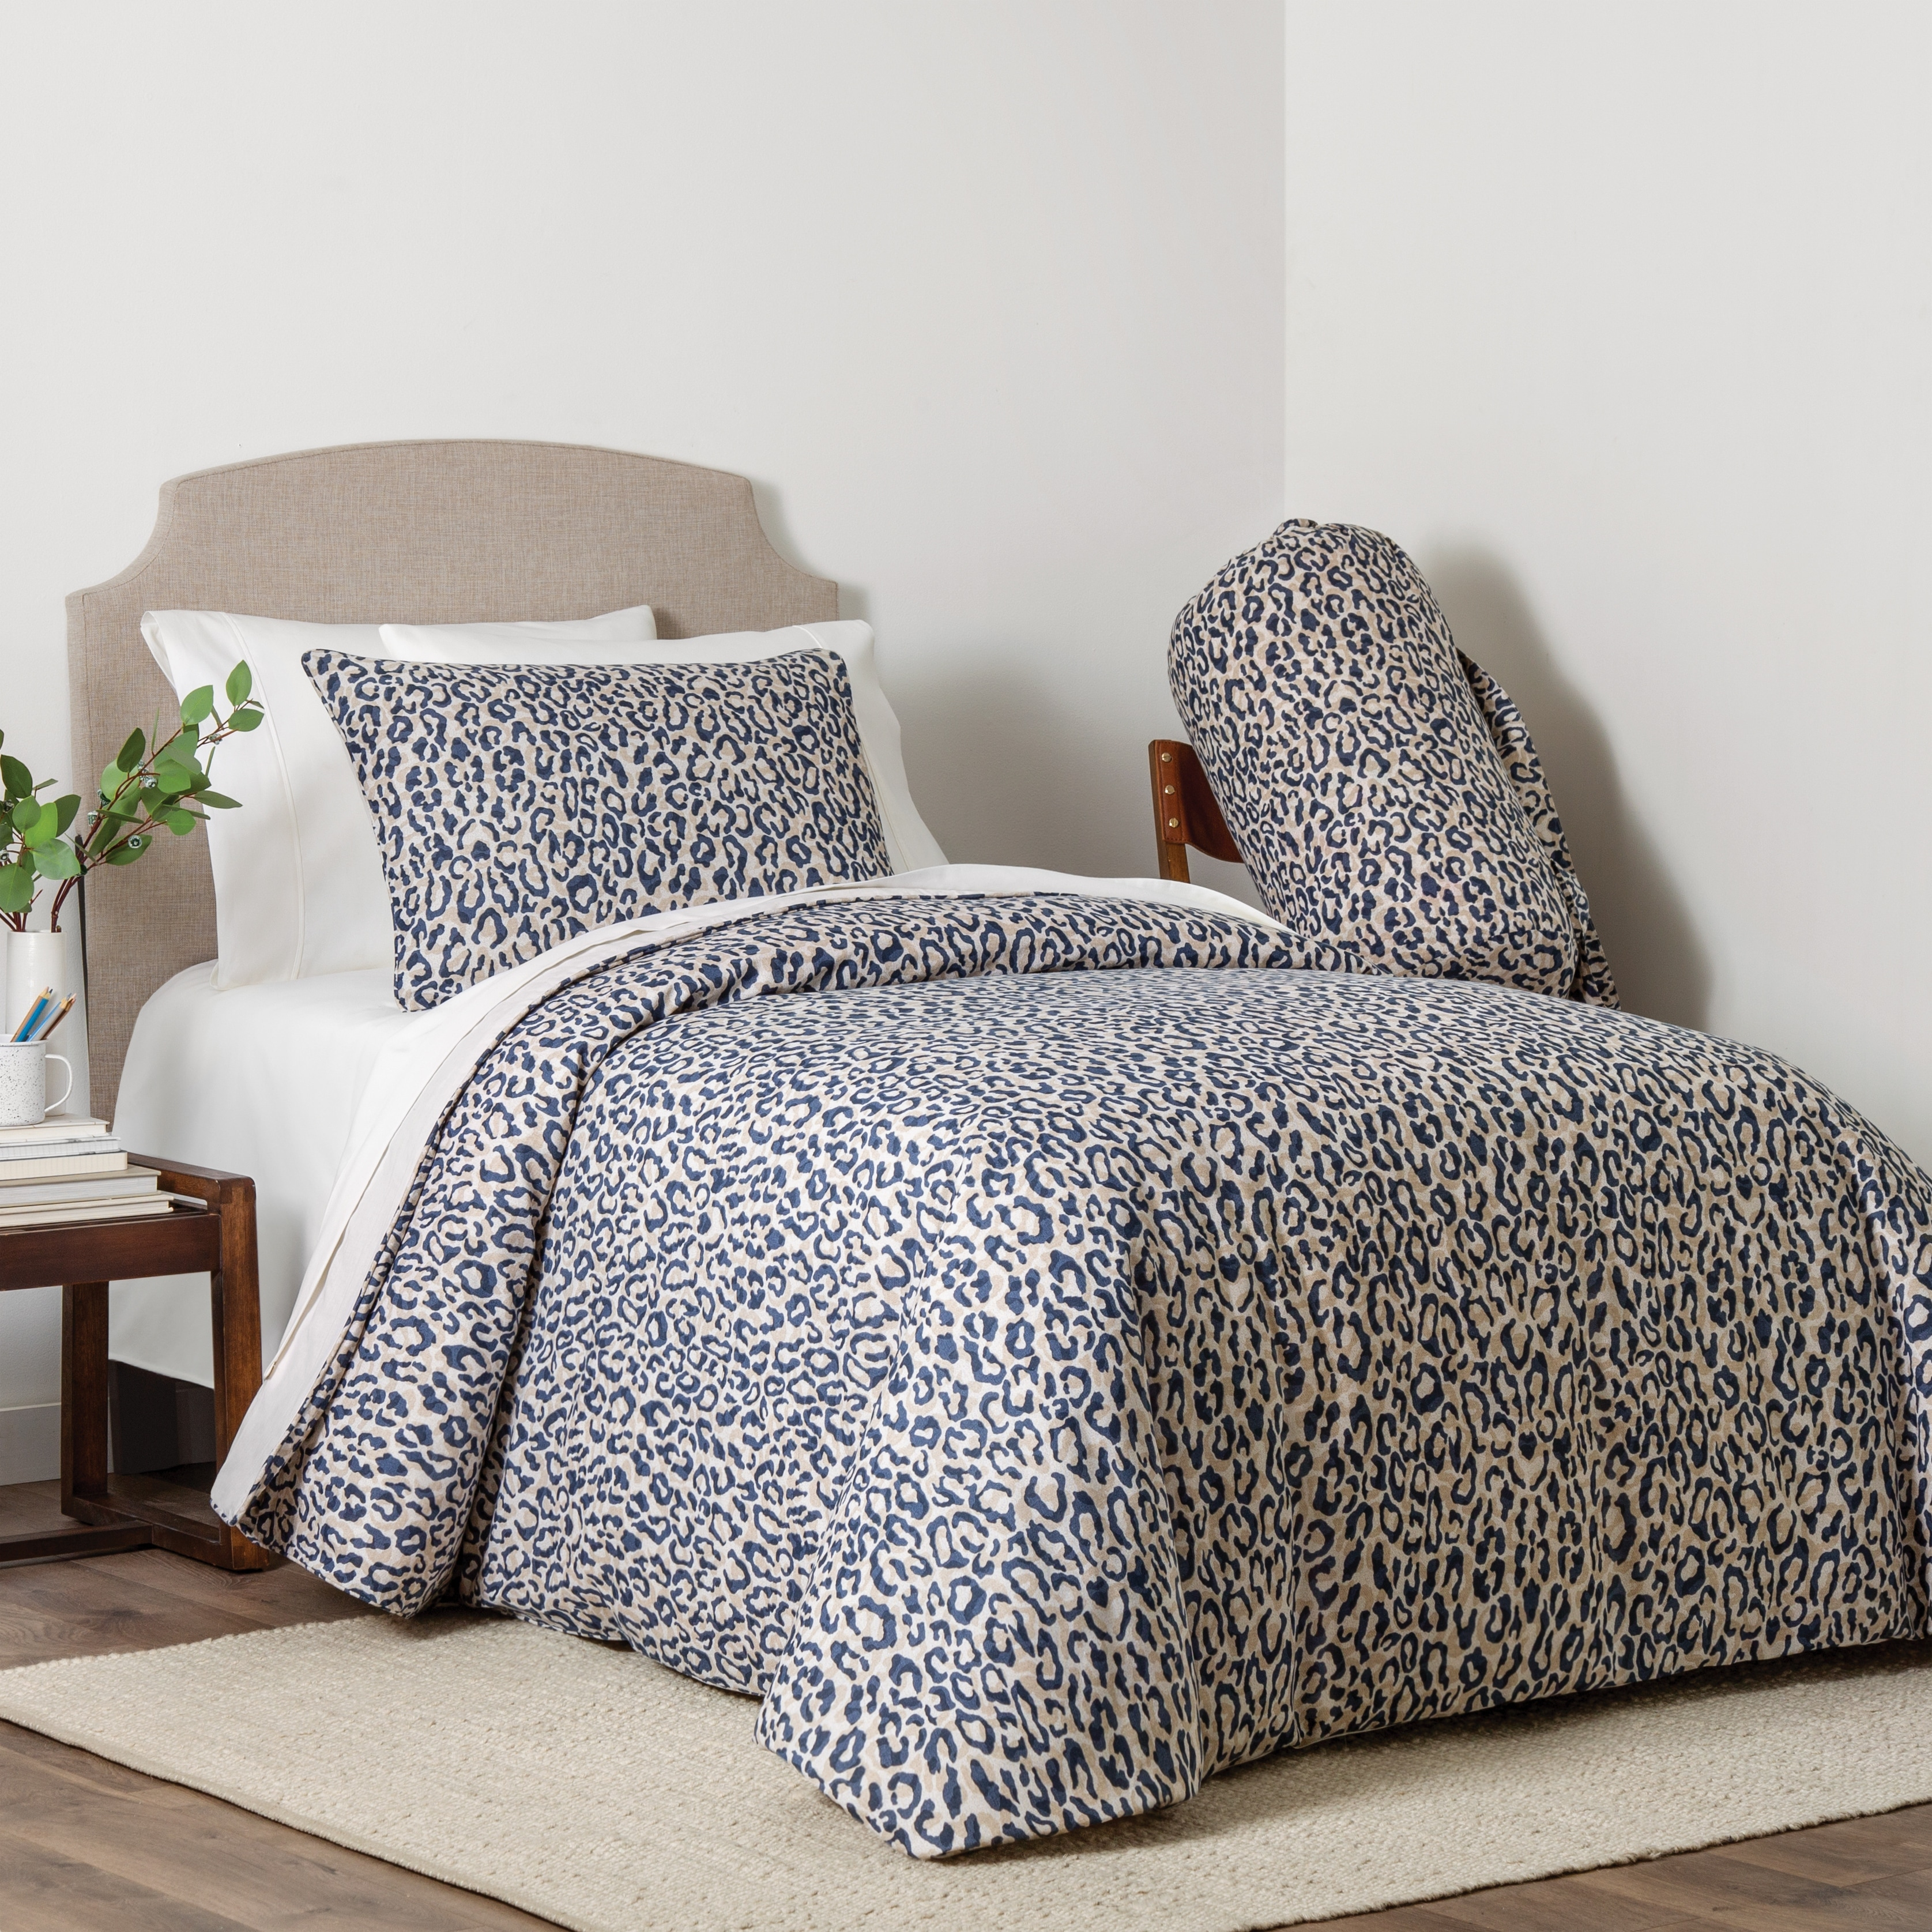 Kenley 4 Piece Animal Print Full Queen Comforter Set On Sale Overstock 31709151